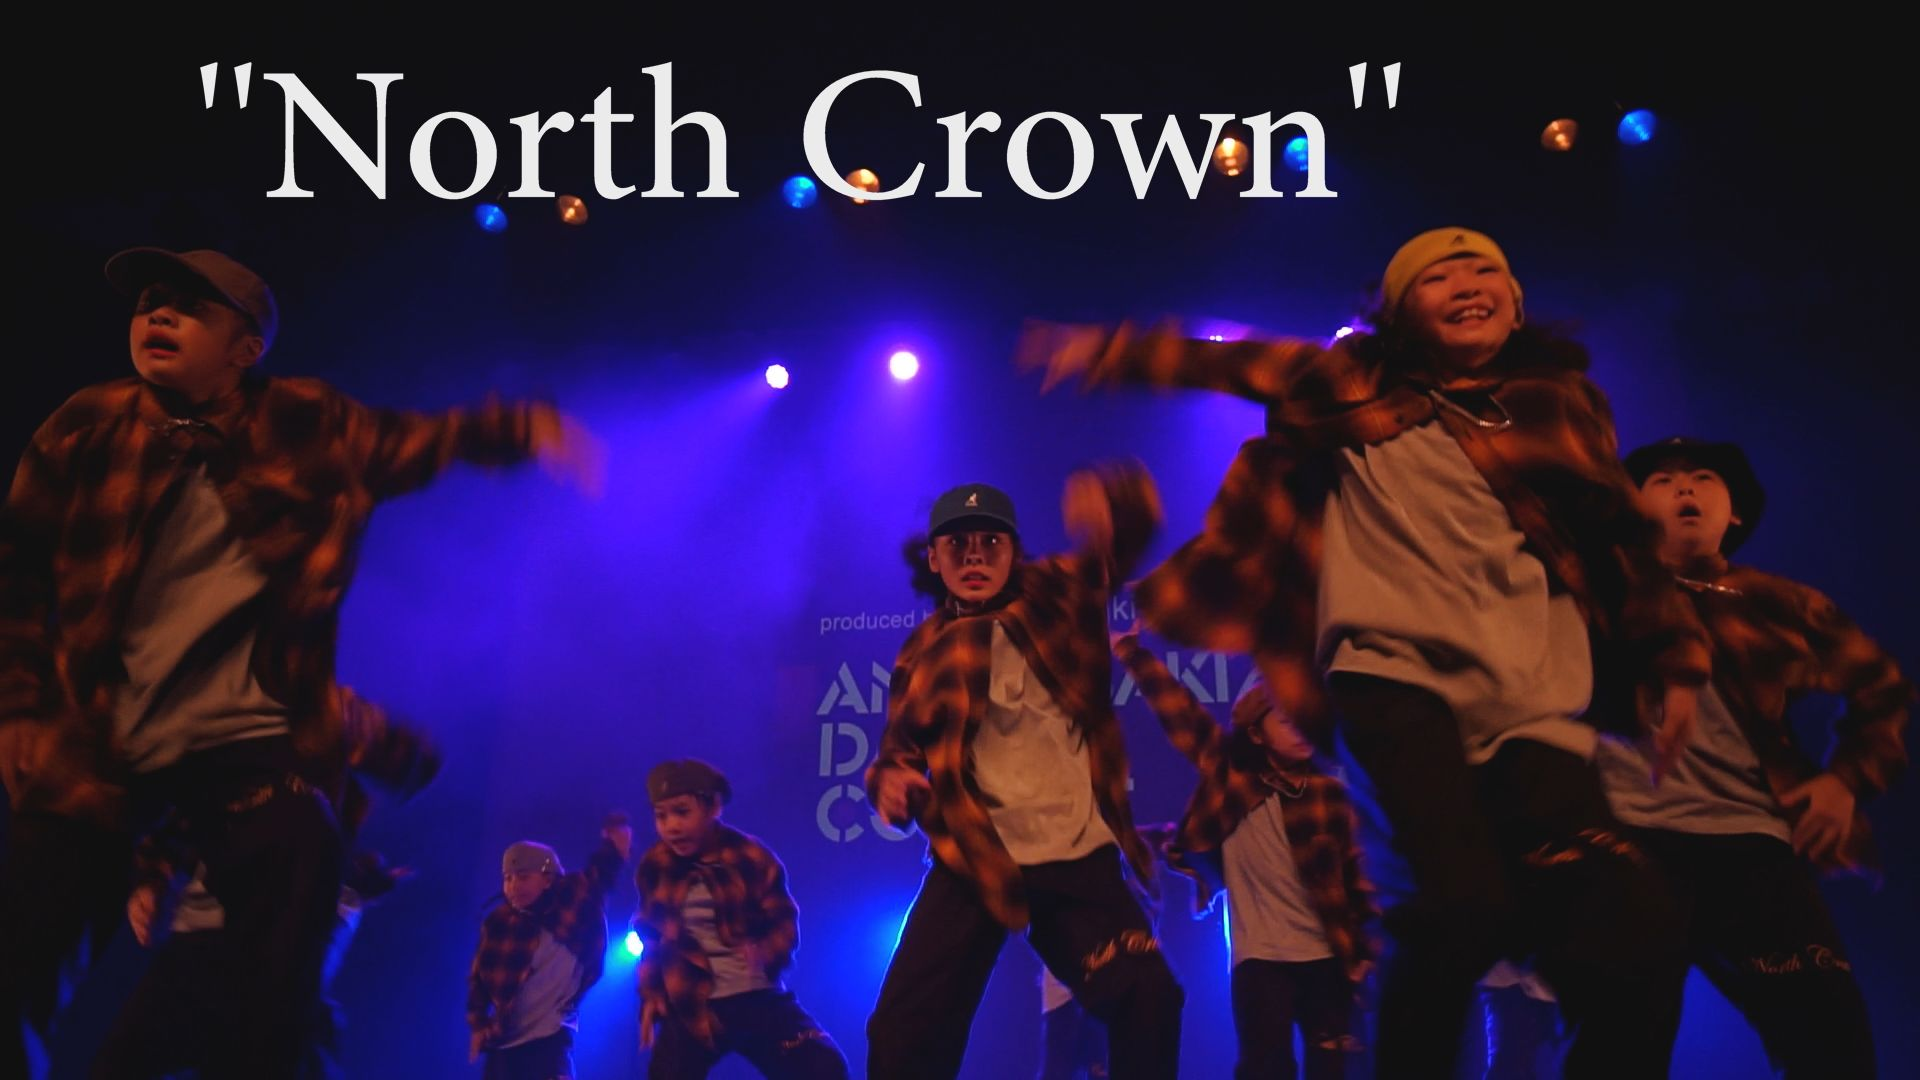 North Crown